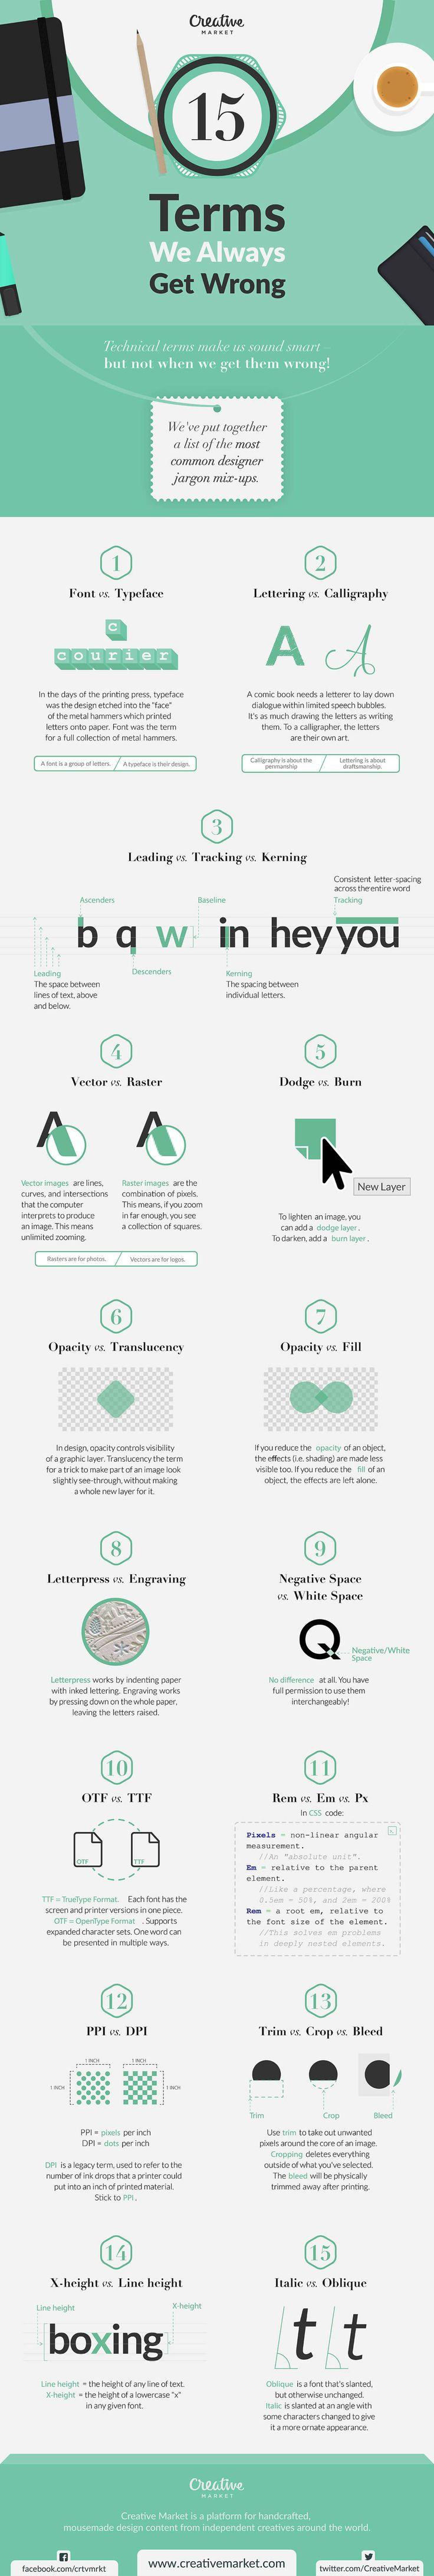 15 of the Most Commonly Misused #Design Terms - Do you fancy an infographic? There are a lot of them online, but if you want your own please visithttp://www.linfografico.com/prezzi/ Online girano molte infografiche, se ne vuoi realizzare una tutta tua visitahttp://www.linfografico.com/prezzi/